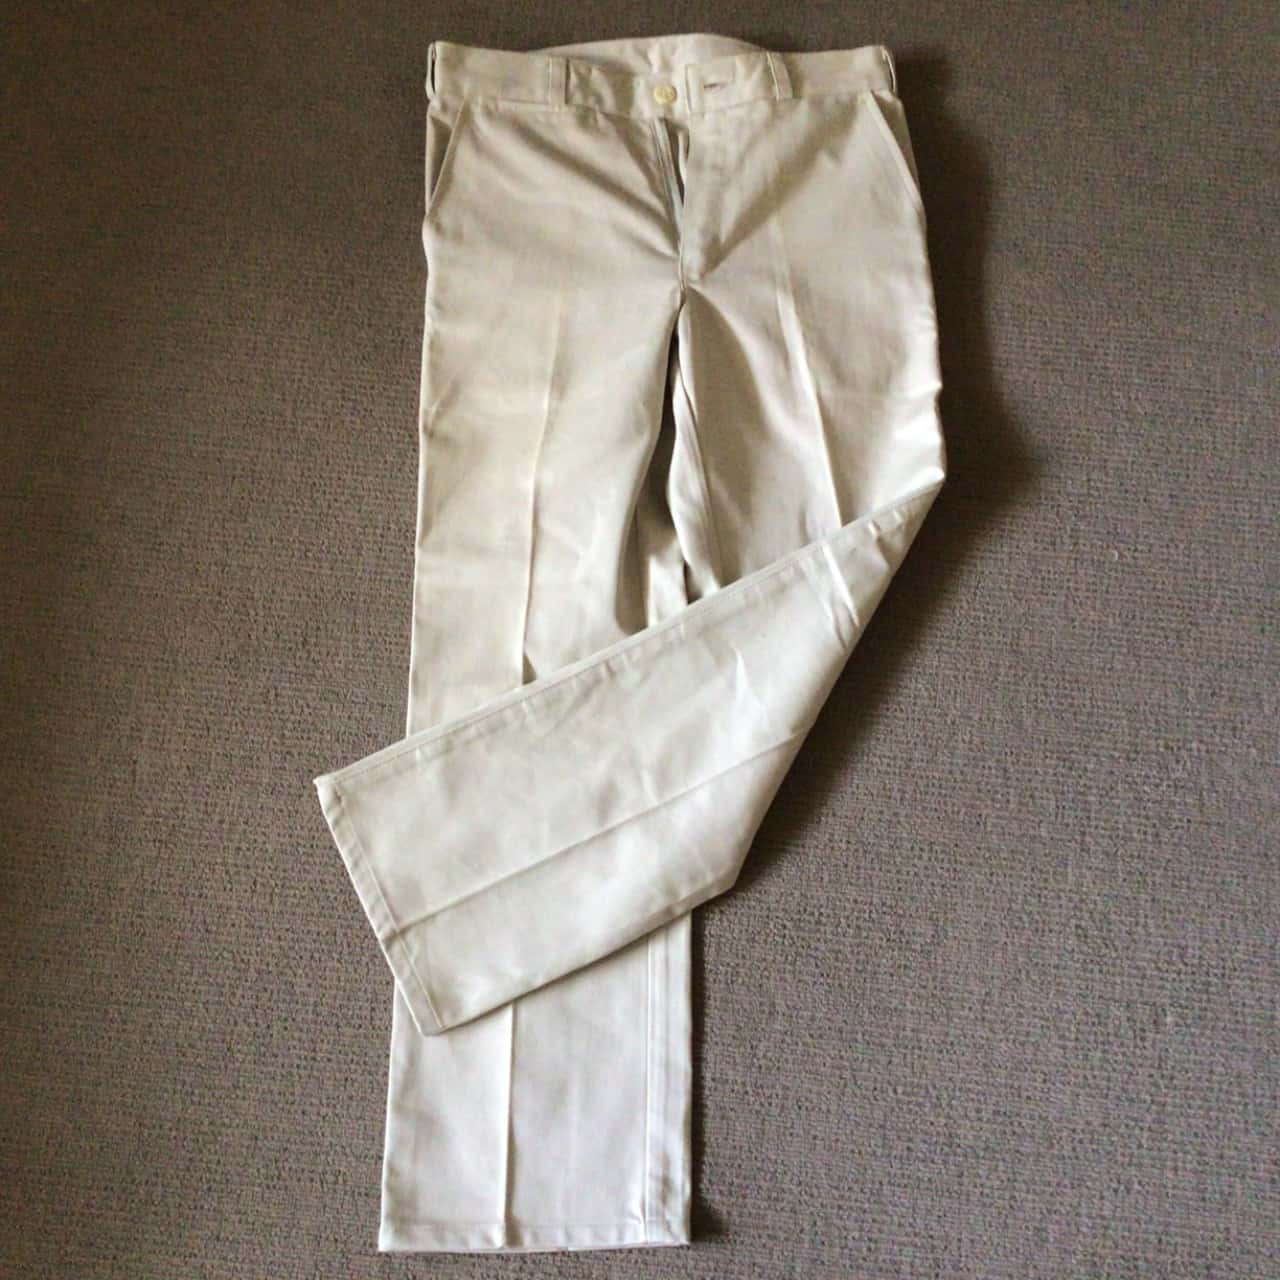 Mens R.M. WILLIAMS PANTS /JEANS  Size 30 Cream/ Fawn ( see description for actual sizes)